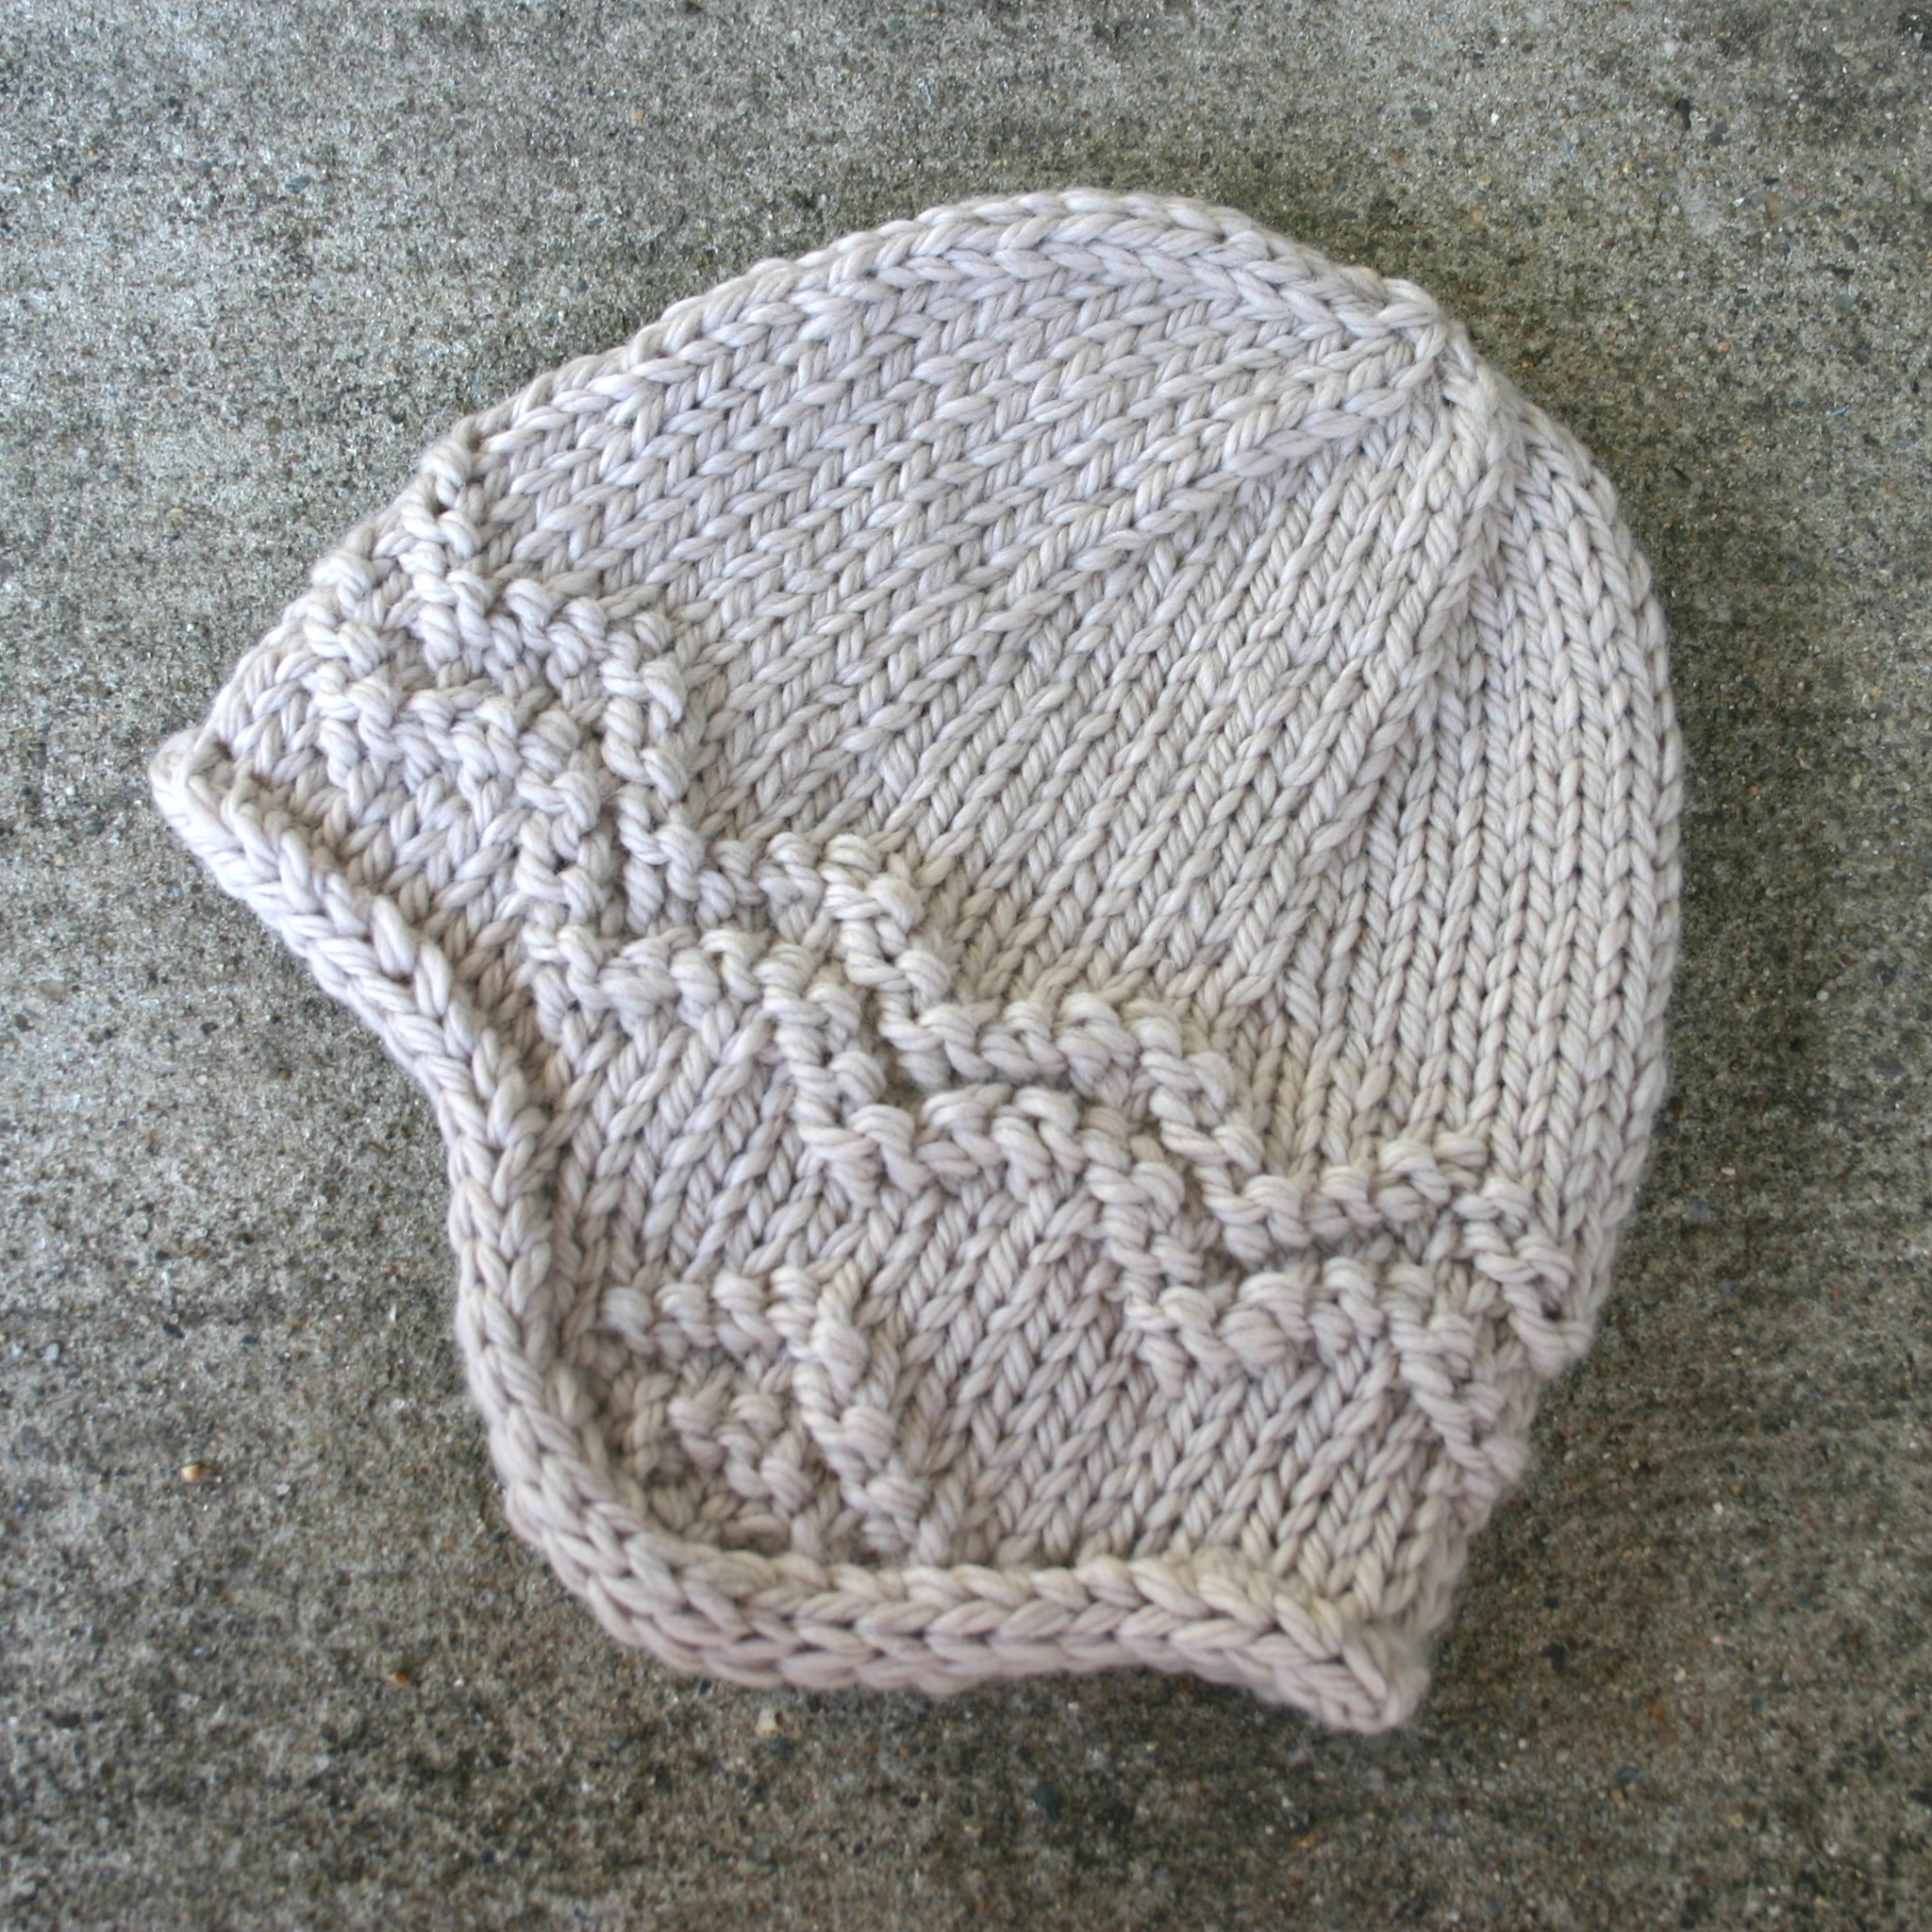 Knitting Patterns Free : Free knitting pattern for an adults earflap hat, knit in bulky weight ...